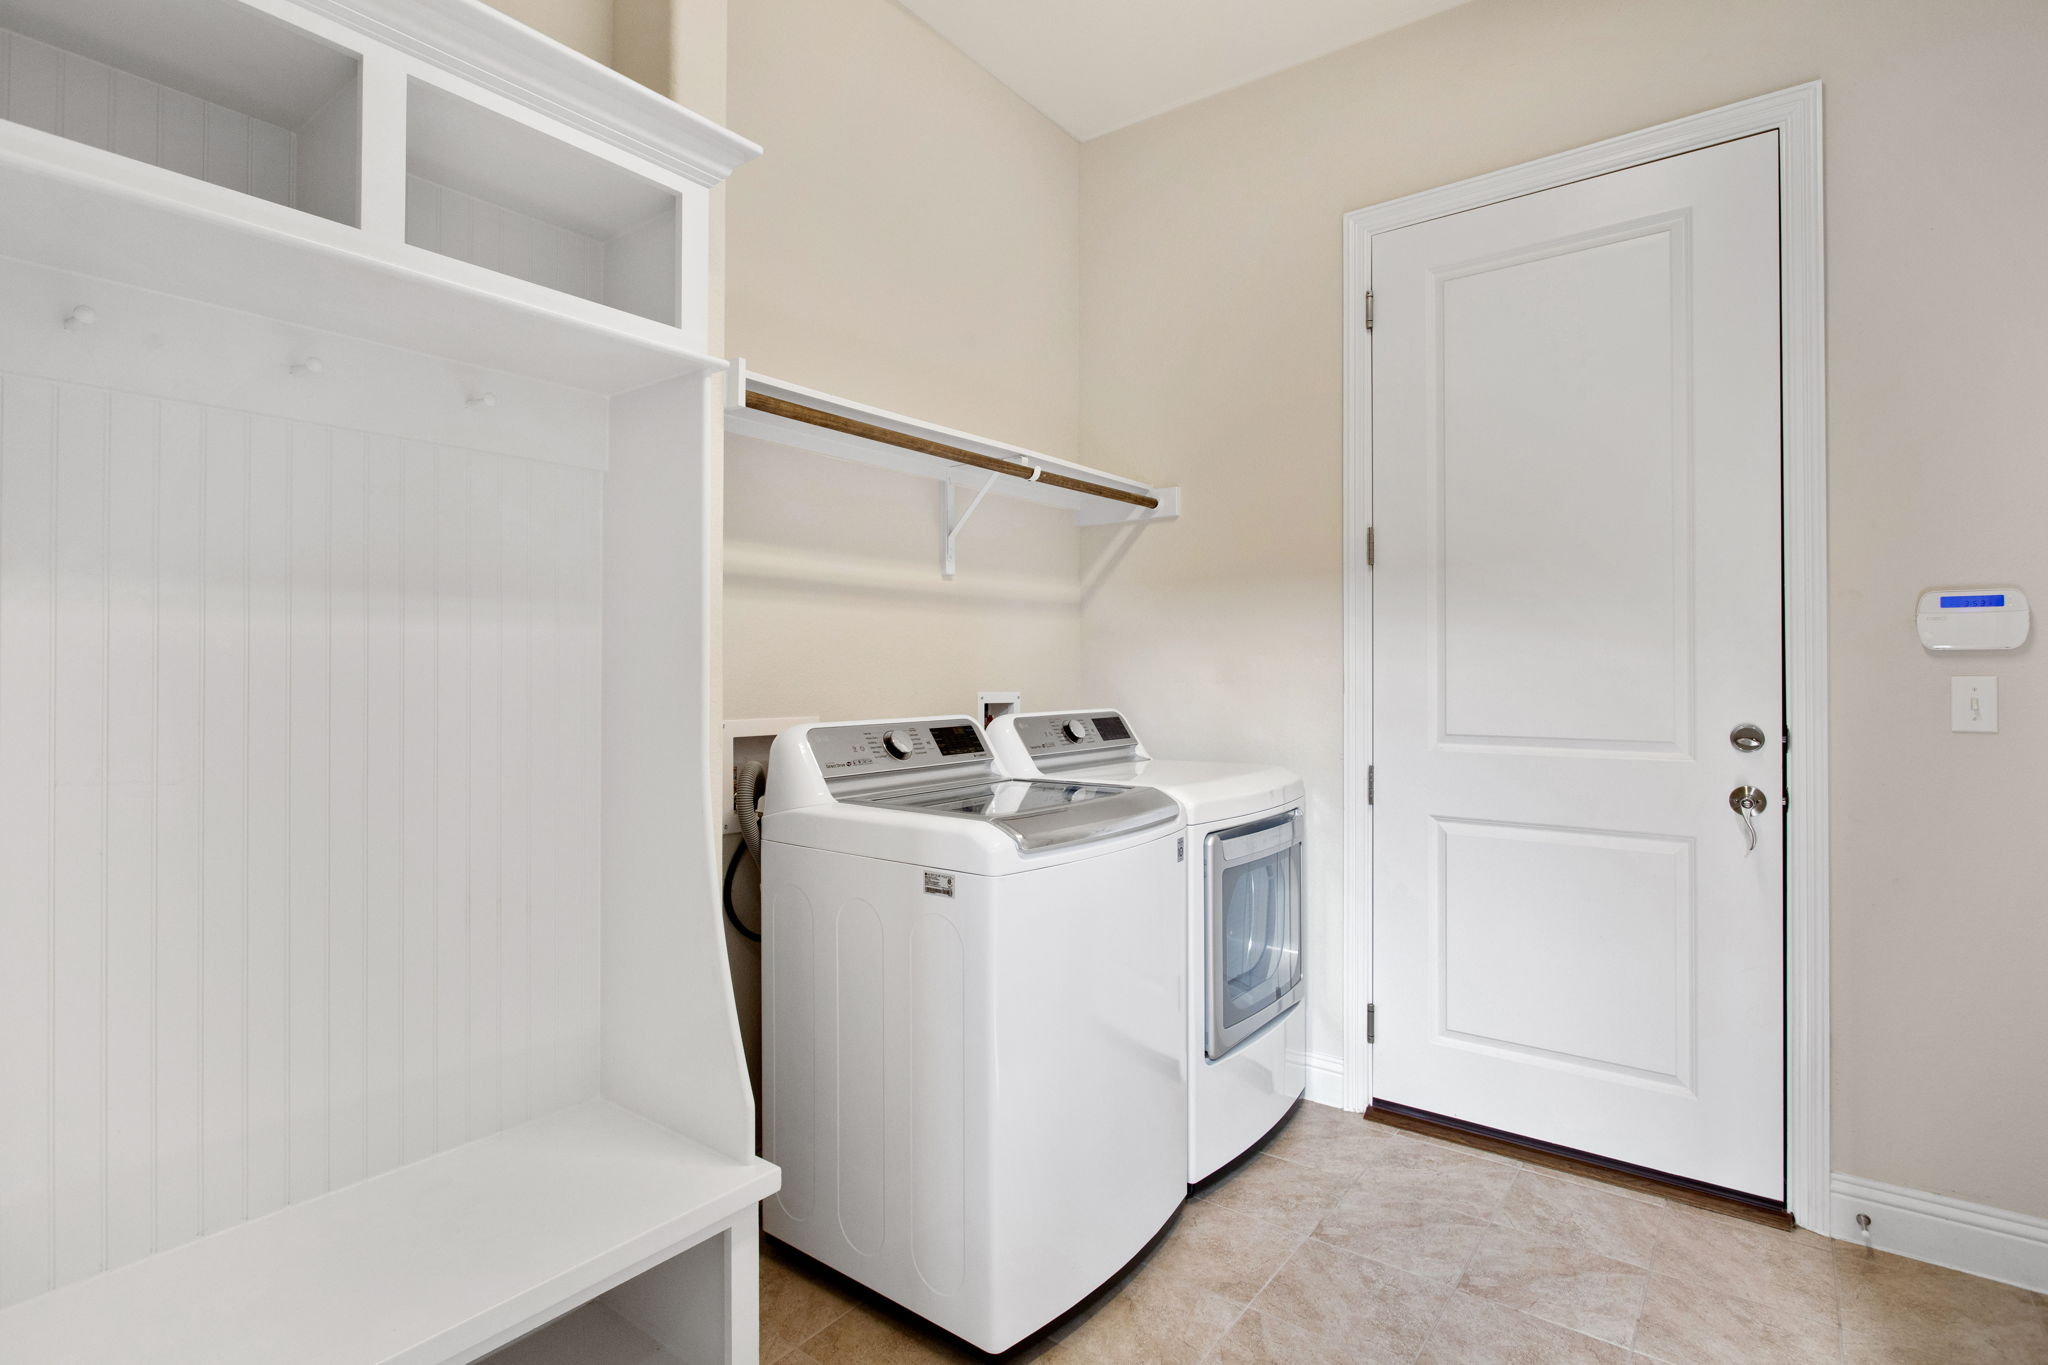 Laundry Room. The door leads to the oversized garage featuring large storage area and utility sink